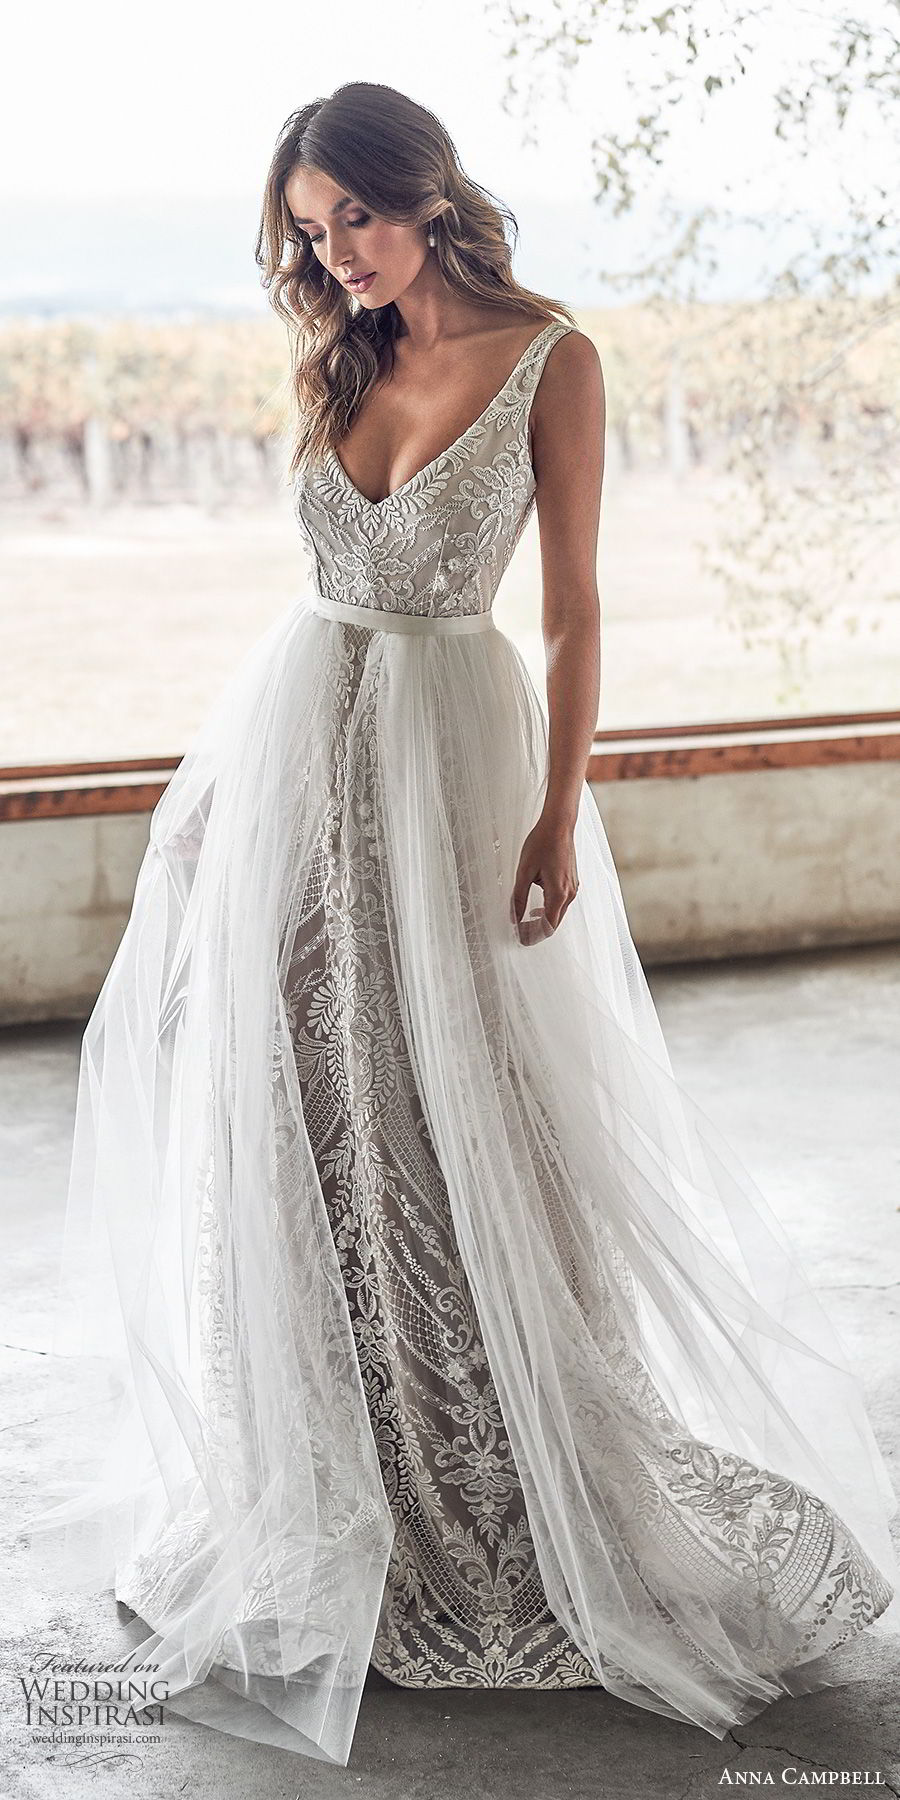 anna campbell 2020 bridal sleeveless thick straps deep v neckline fully embellished embroidered lace sheath wedding dress a line ball gown overskirt (9) elegant sexy v back chapel train mv